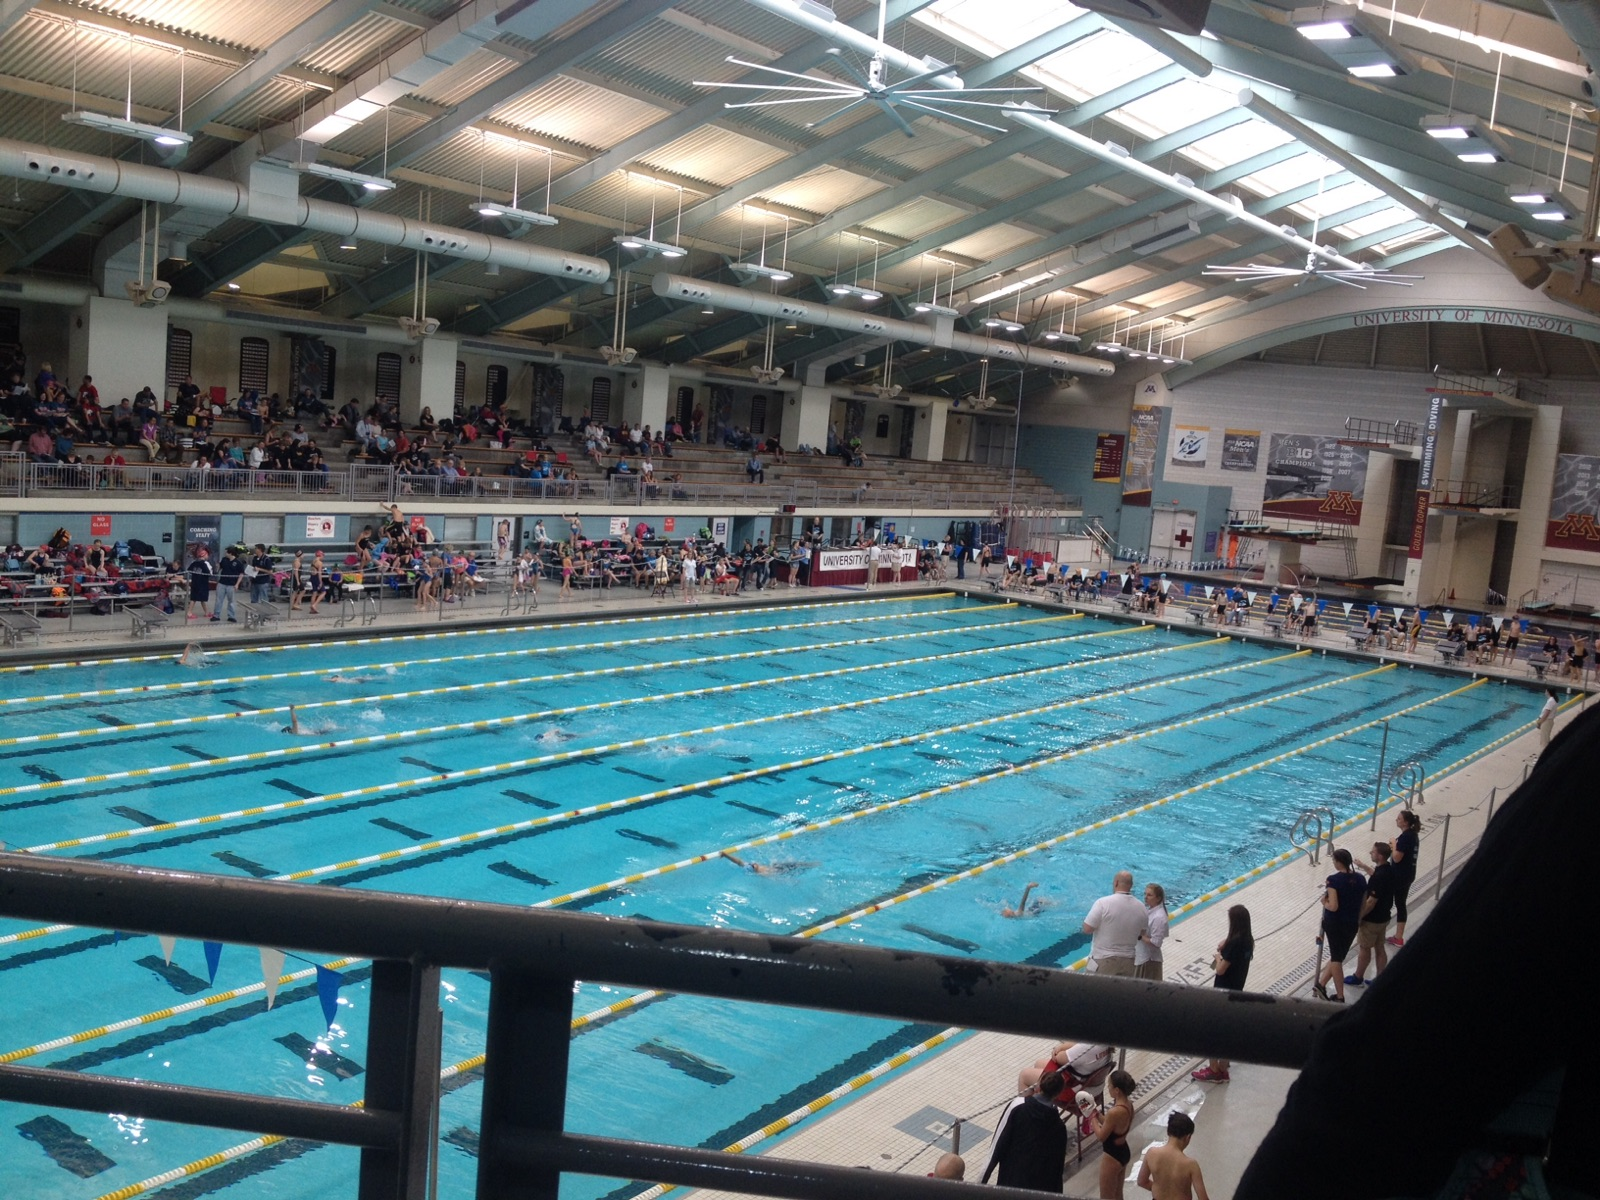 Swim Meet at the U of MN